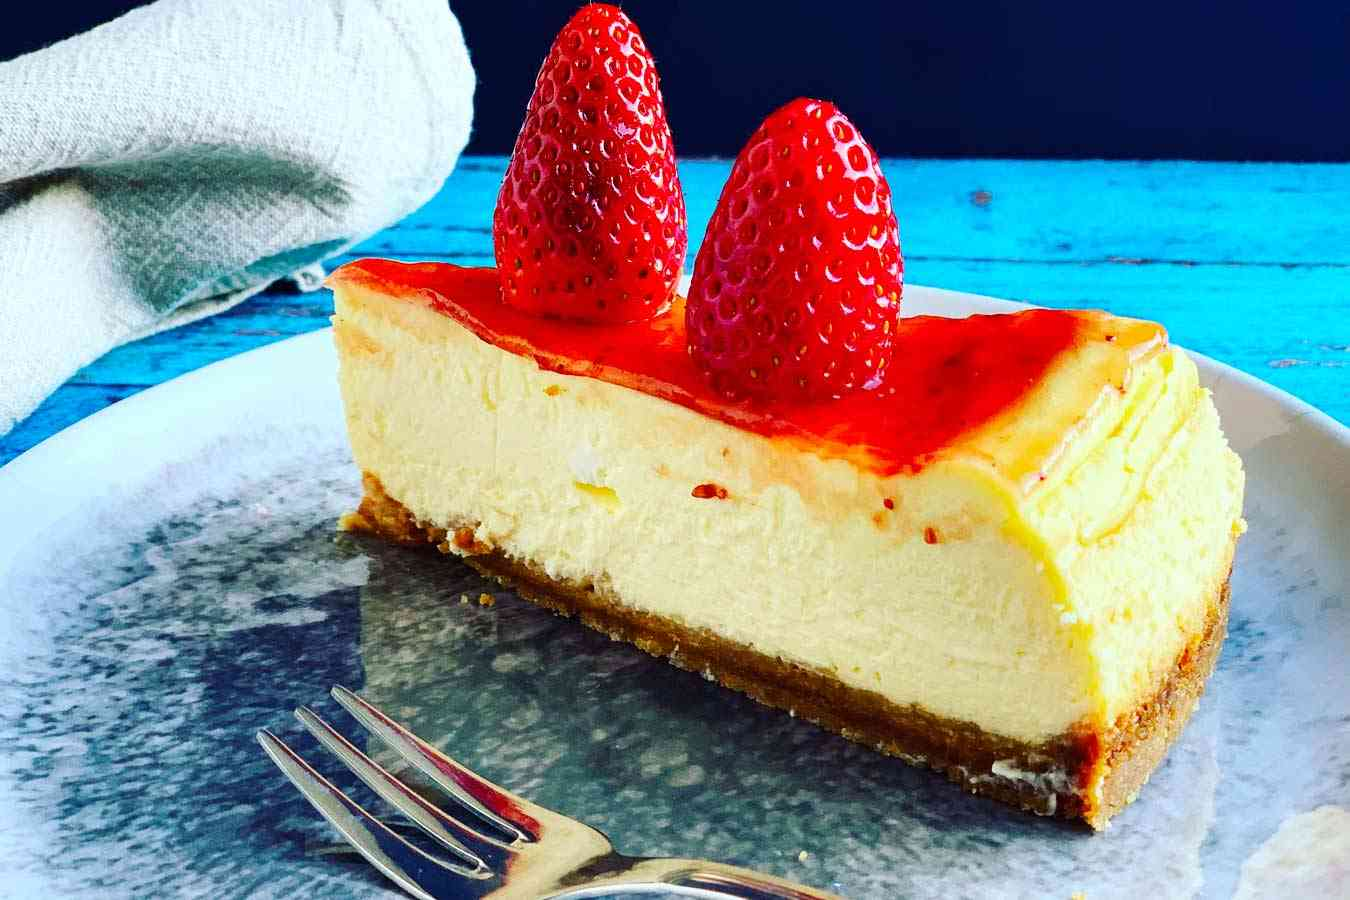 New York Cheesecake ricetta originale